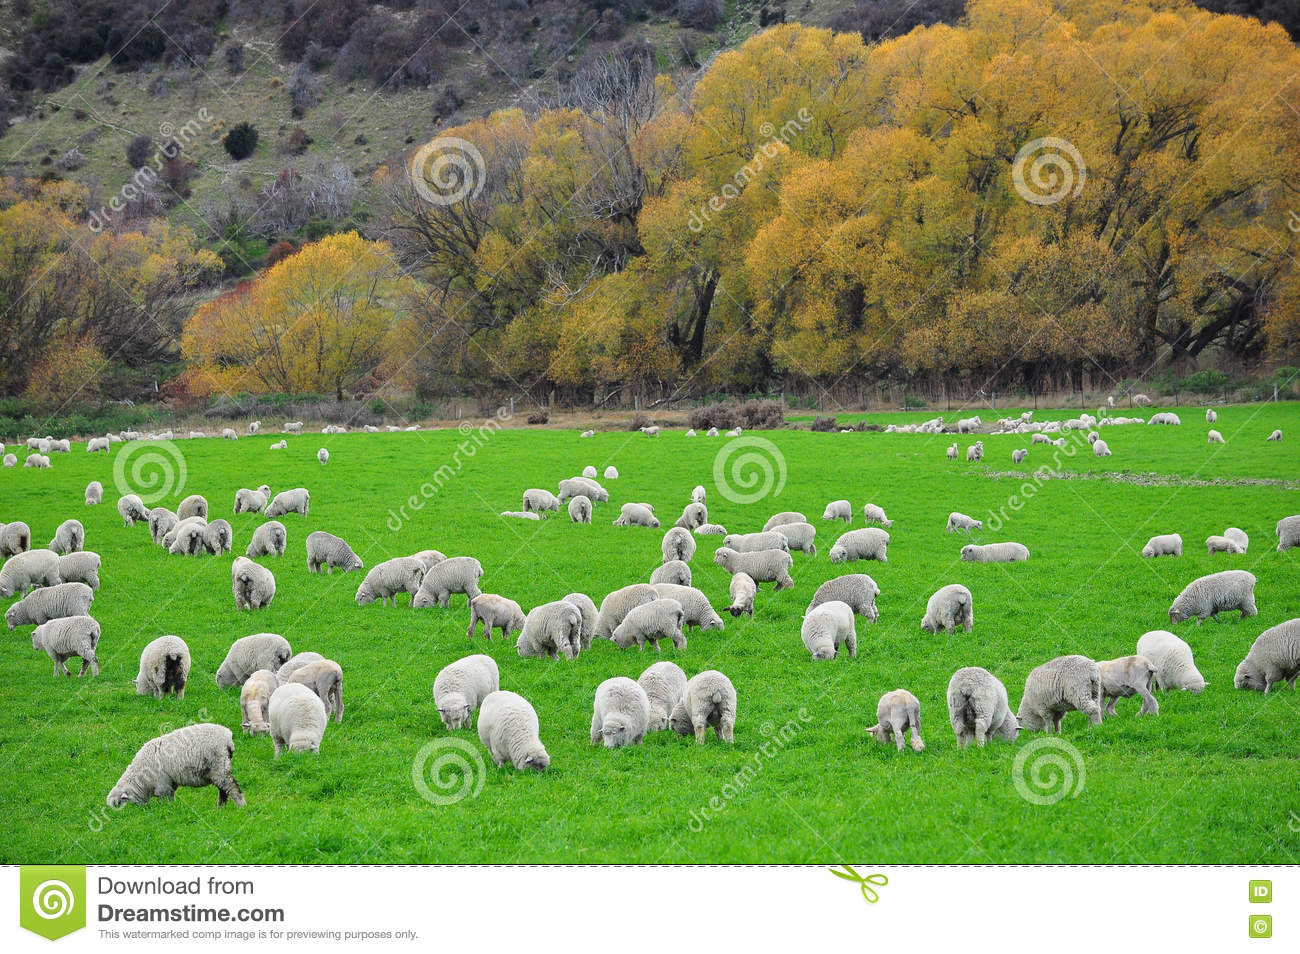 Sheep farm in New Zealand stock photo. Image of meadow - 79253380